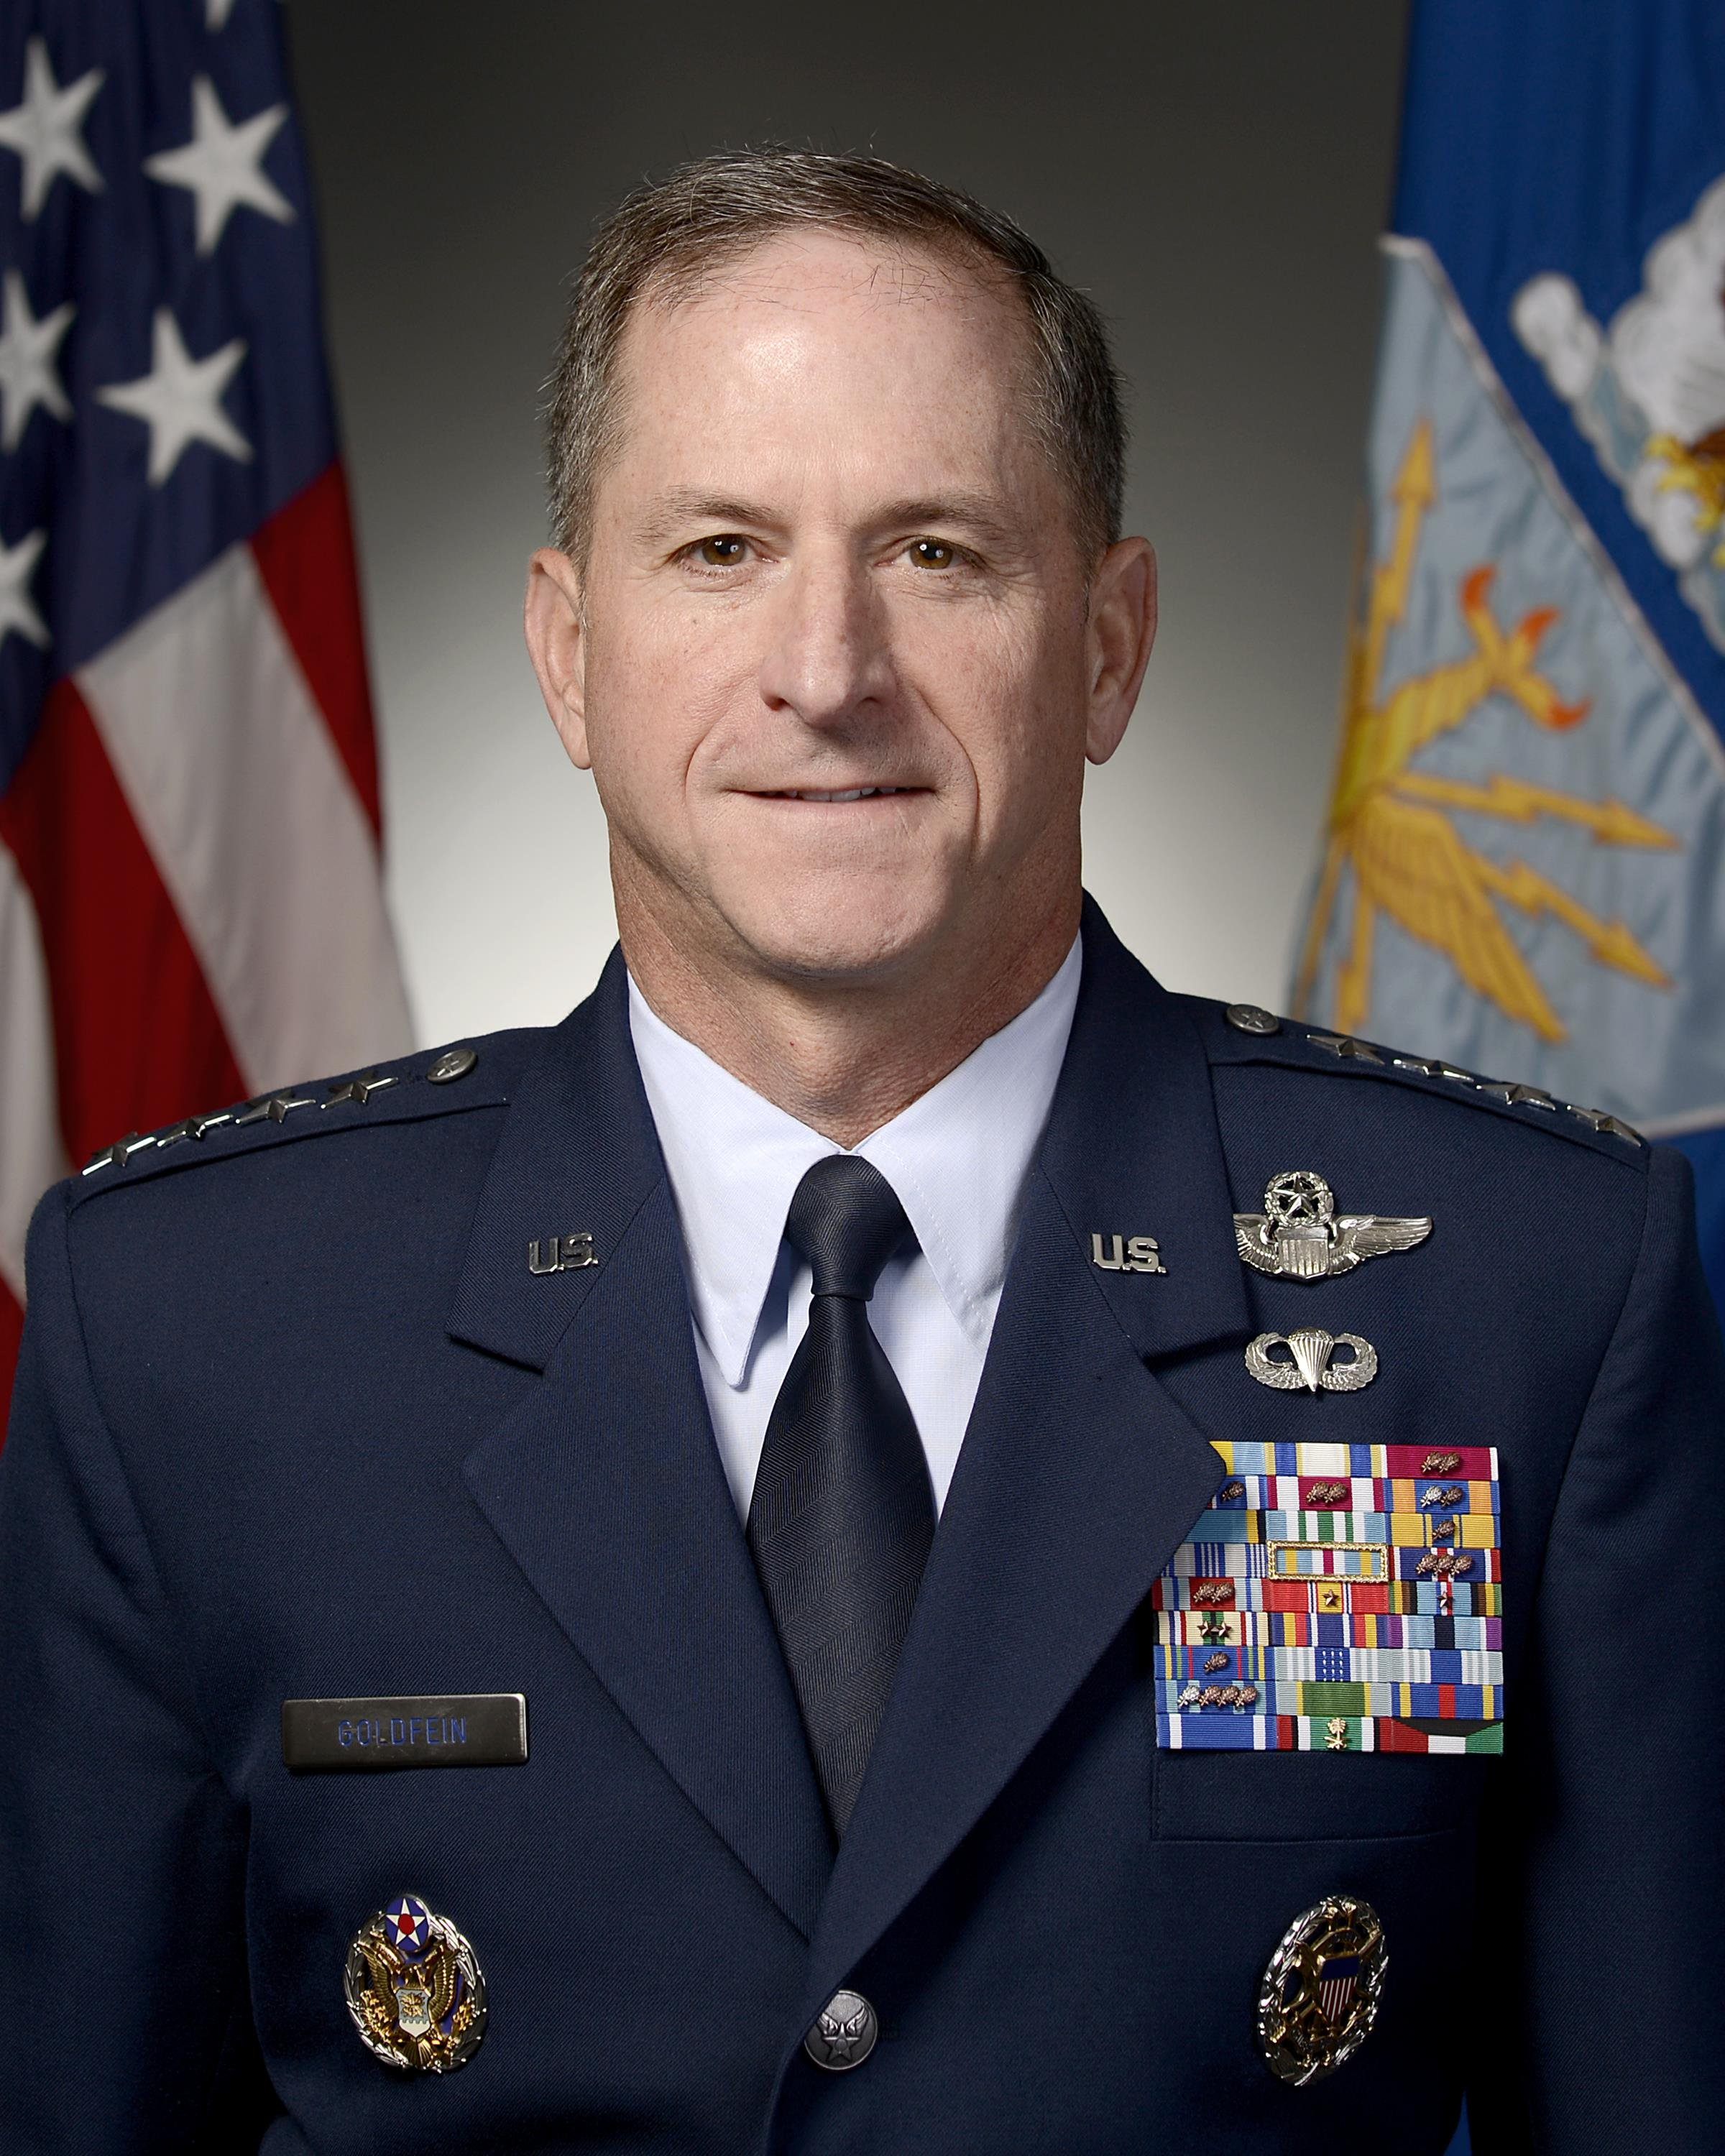 Gen. David L. Goldfein nominated to be the 21st chief of staff of the Air Force.